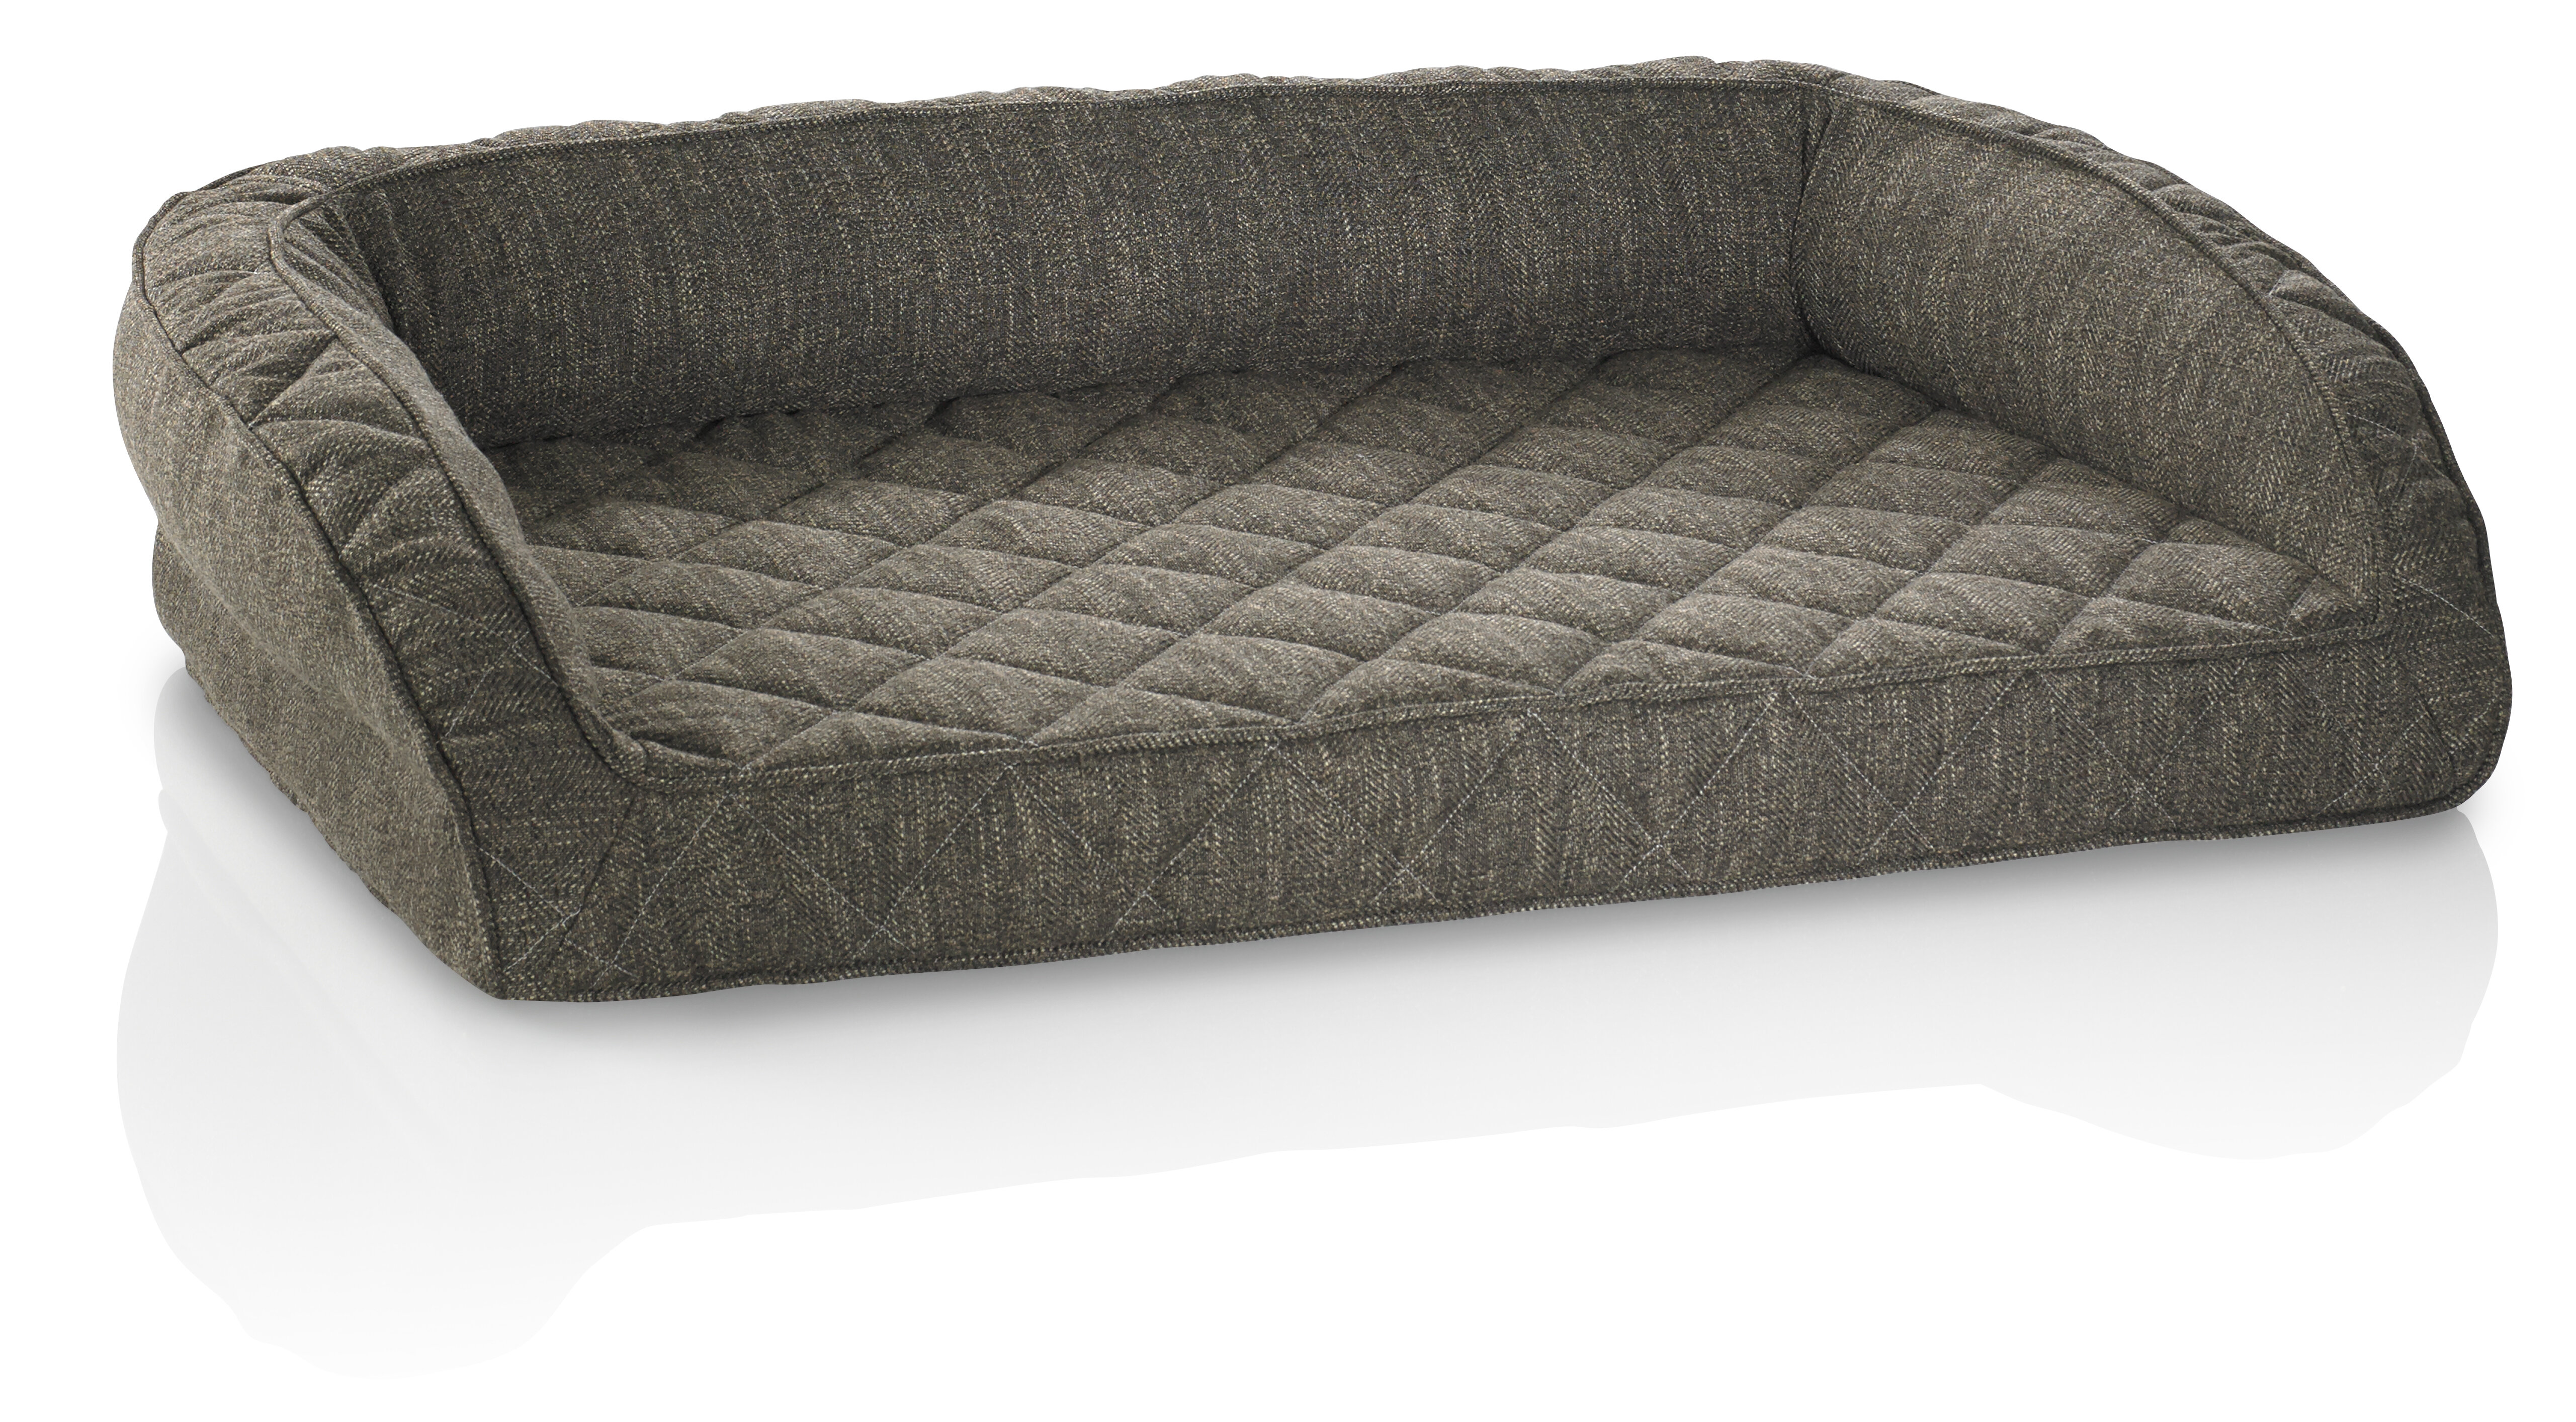 foam com x with ip cover removable bed large dog memory walmart